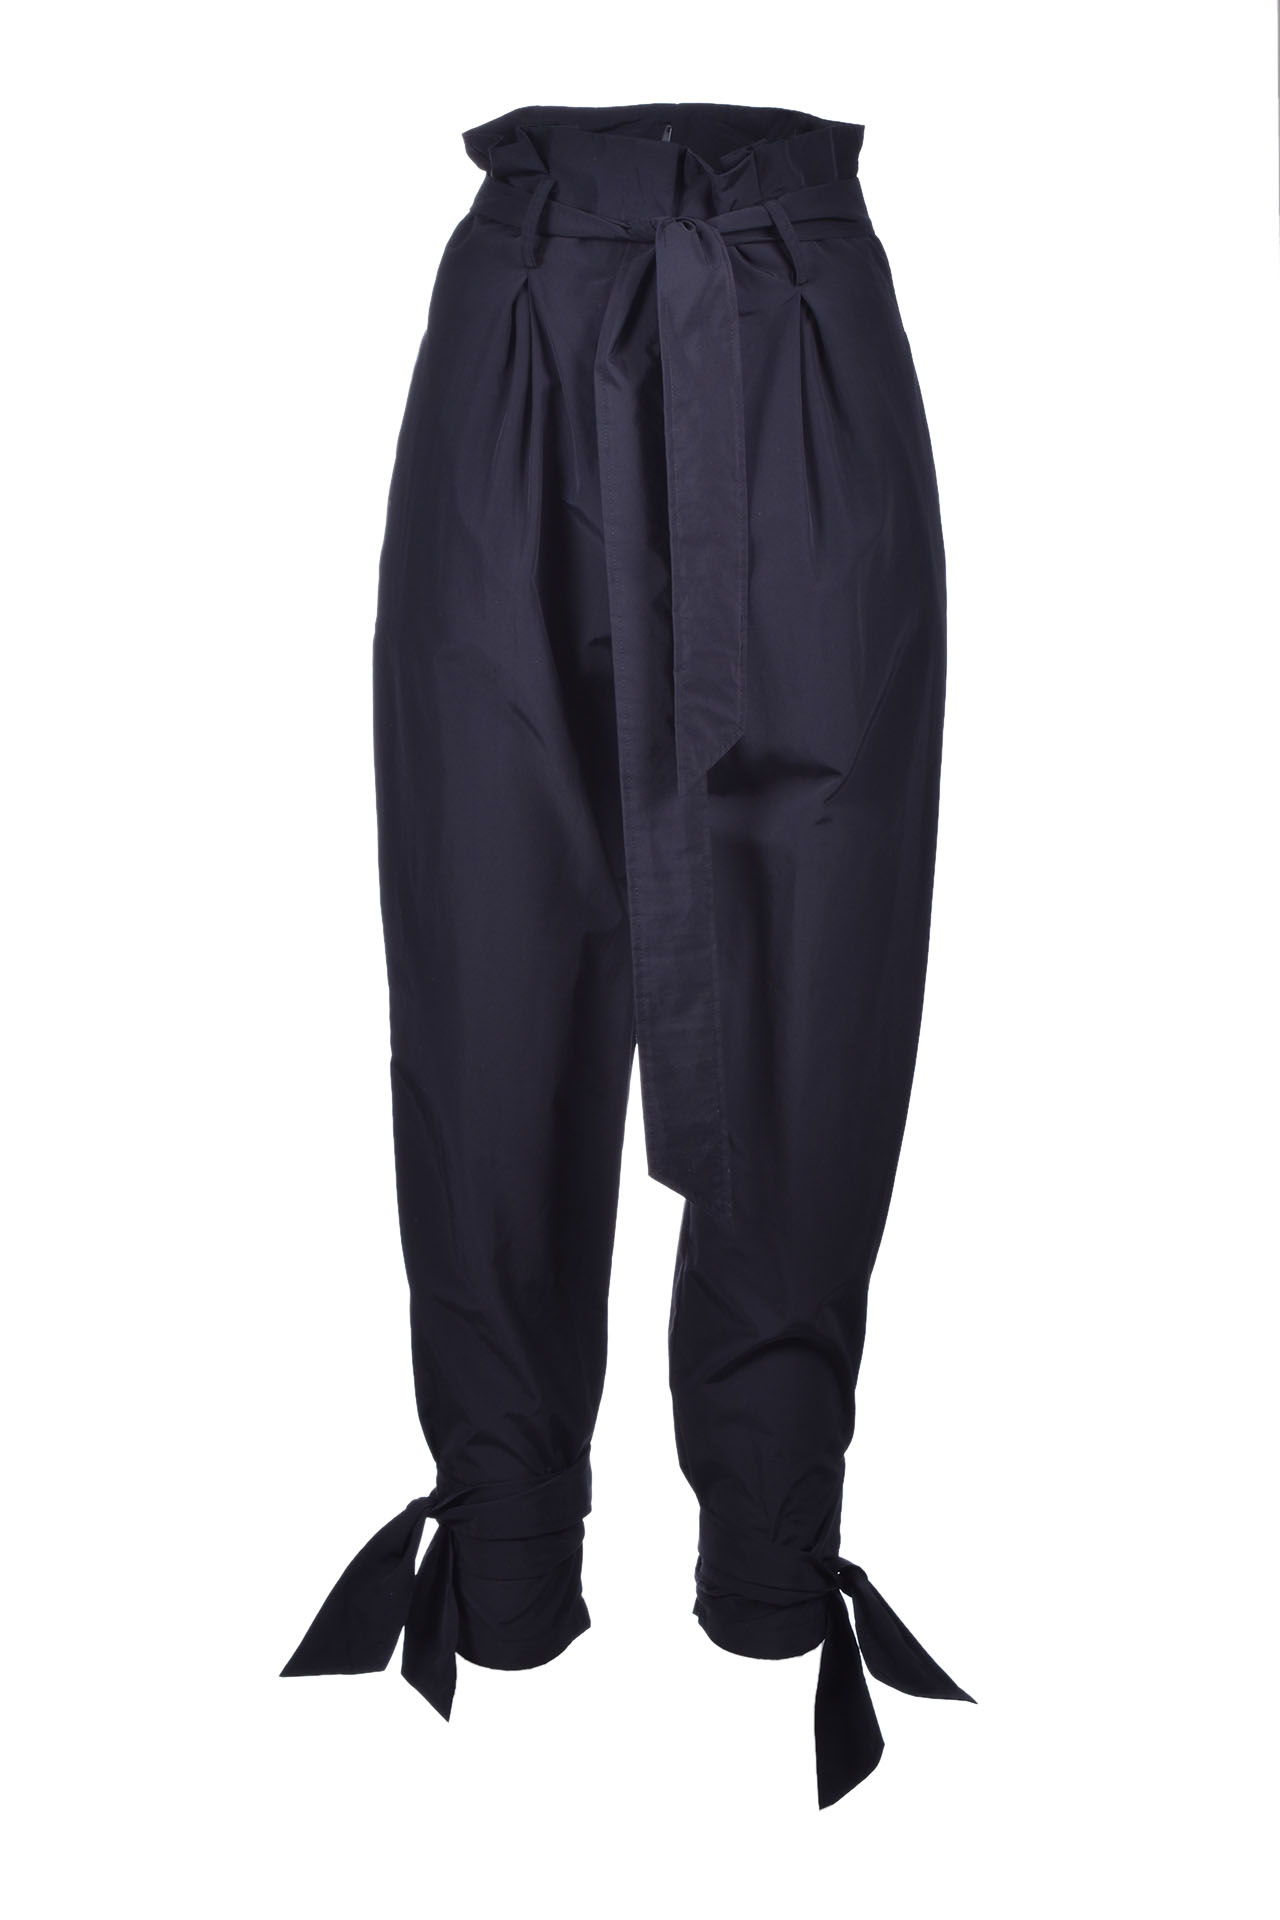 high waist trousers with bows - black JUCCA   Pants   J3114021003